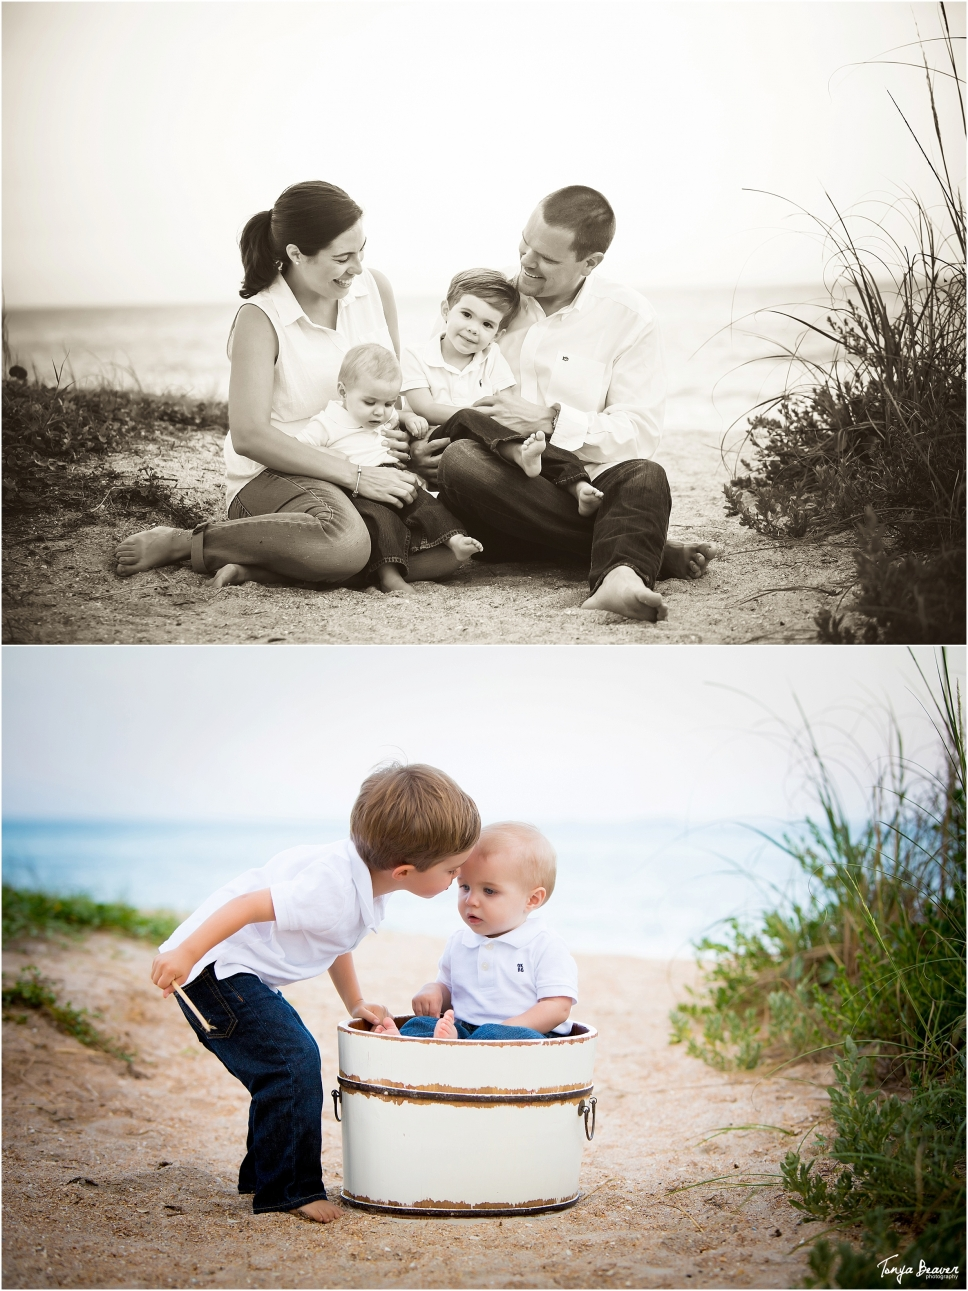 Jacksonville family photographer, ponte vedra family photographer, tonya beaver photography, beach family photos300